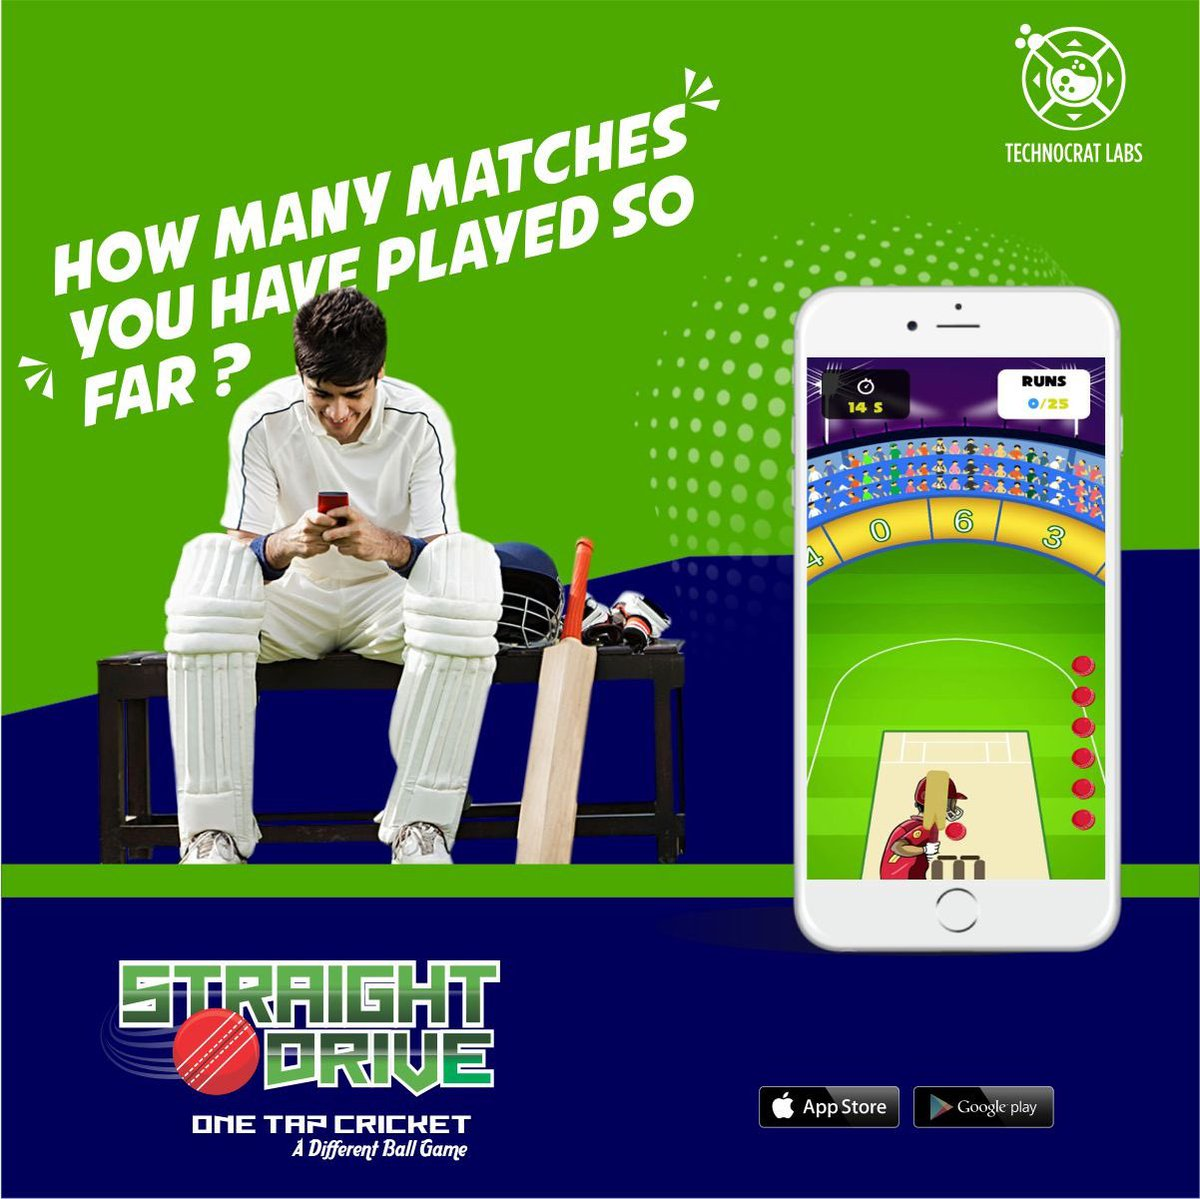 How many matches you have played so far ?Download the Straight Drive Cricket Game Now. For android users click http://rb.gy/zk0my8 and for iphone users click http://rb.gy/fynwuv  #StraightDrive #Drive_Cricket #StraightDriveCricket #MobileGame #Entertainment #OneTapCricketpic.twitter.com/EEh1xUJOBP